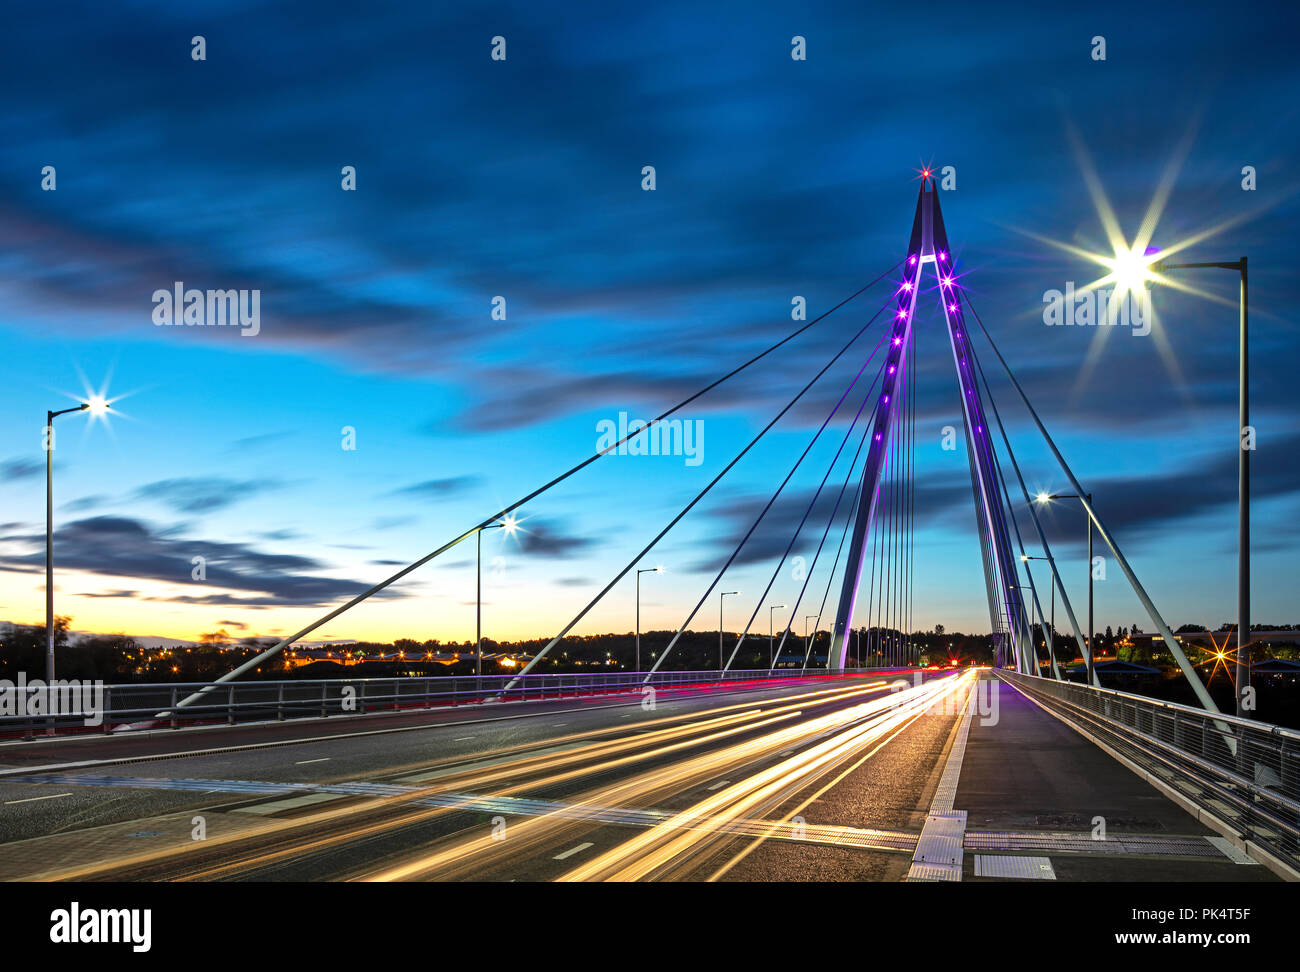 Northern Spire bridge at dusk, Sunderland, Tyne and Wear, United kingdom - Stock Image